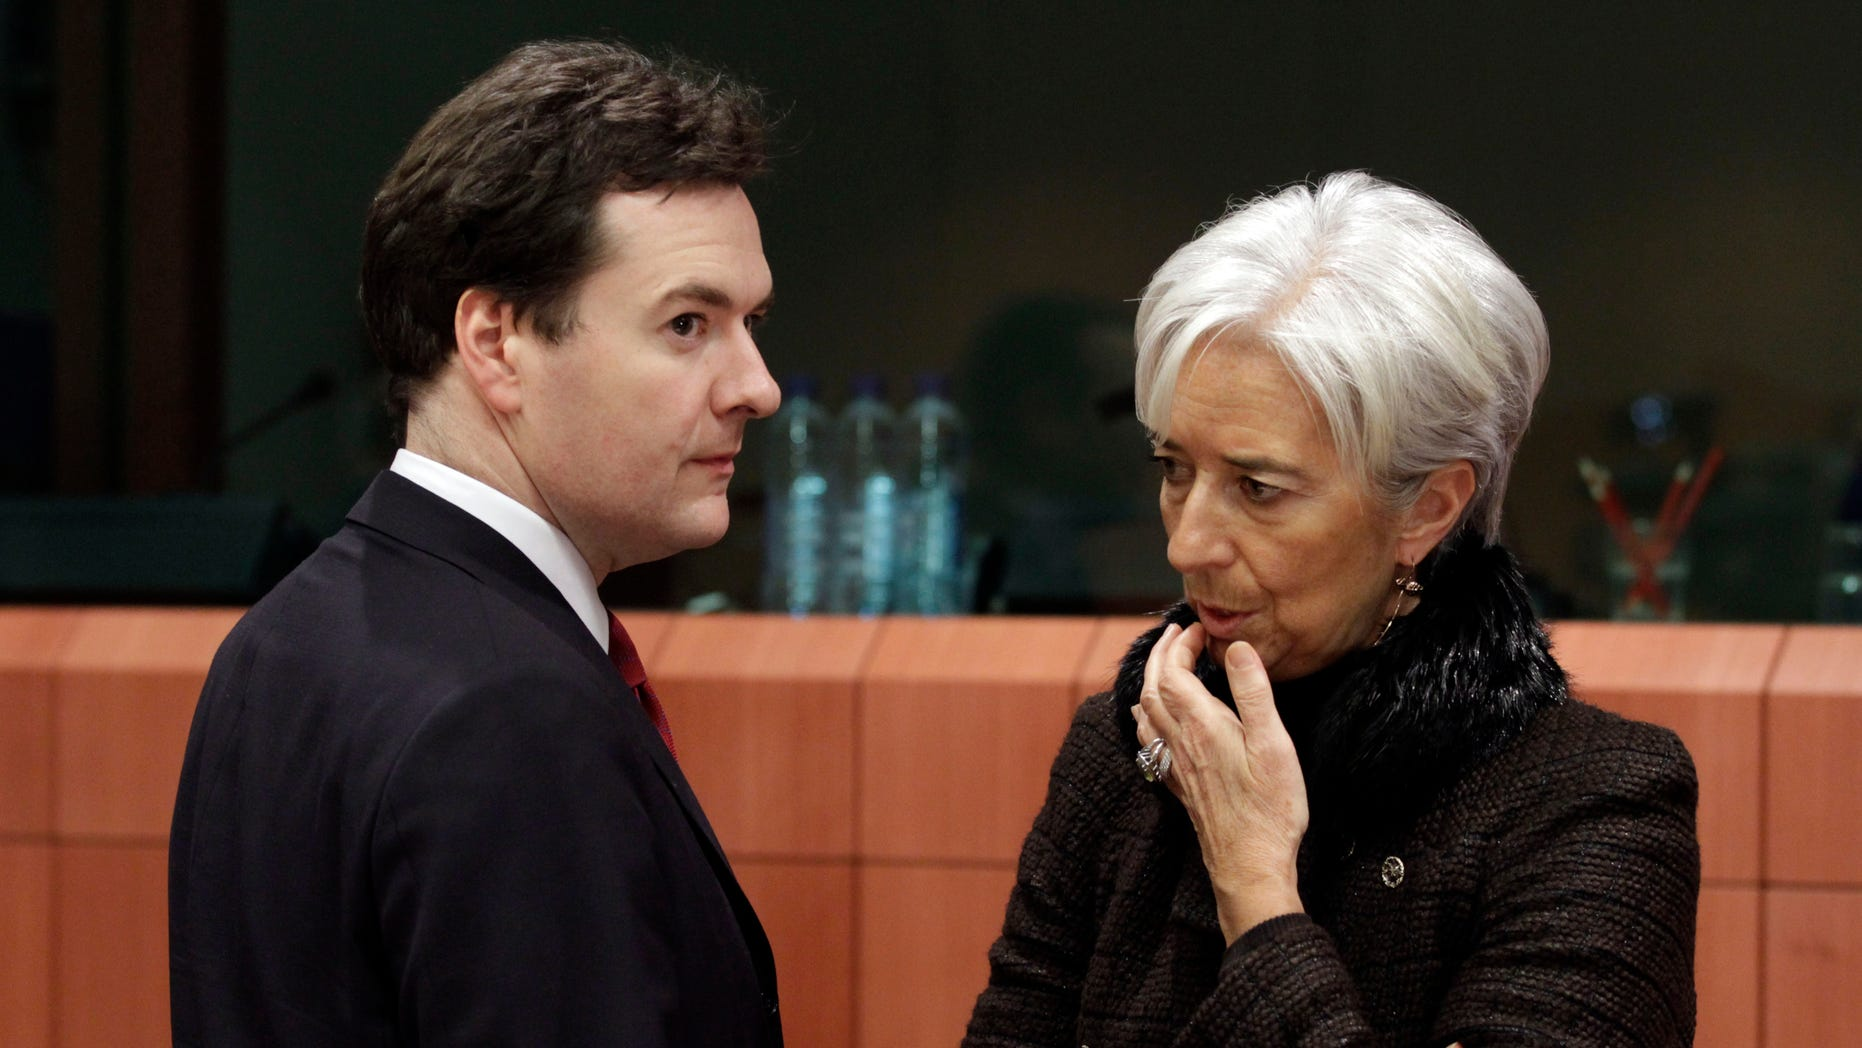 Nov. 28: French Finance Minister Christine Lagarde, right, shares a word with British Chancellor of the Exchequer George Osborne during a round table of eurozone finance ministers at the EU Council building in Brussels.